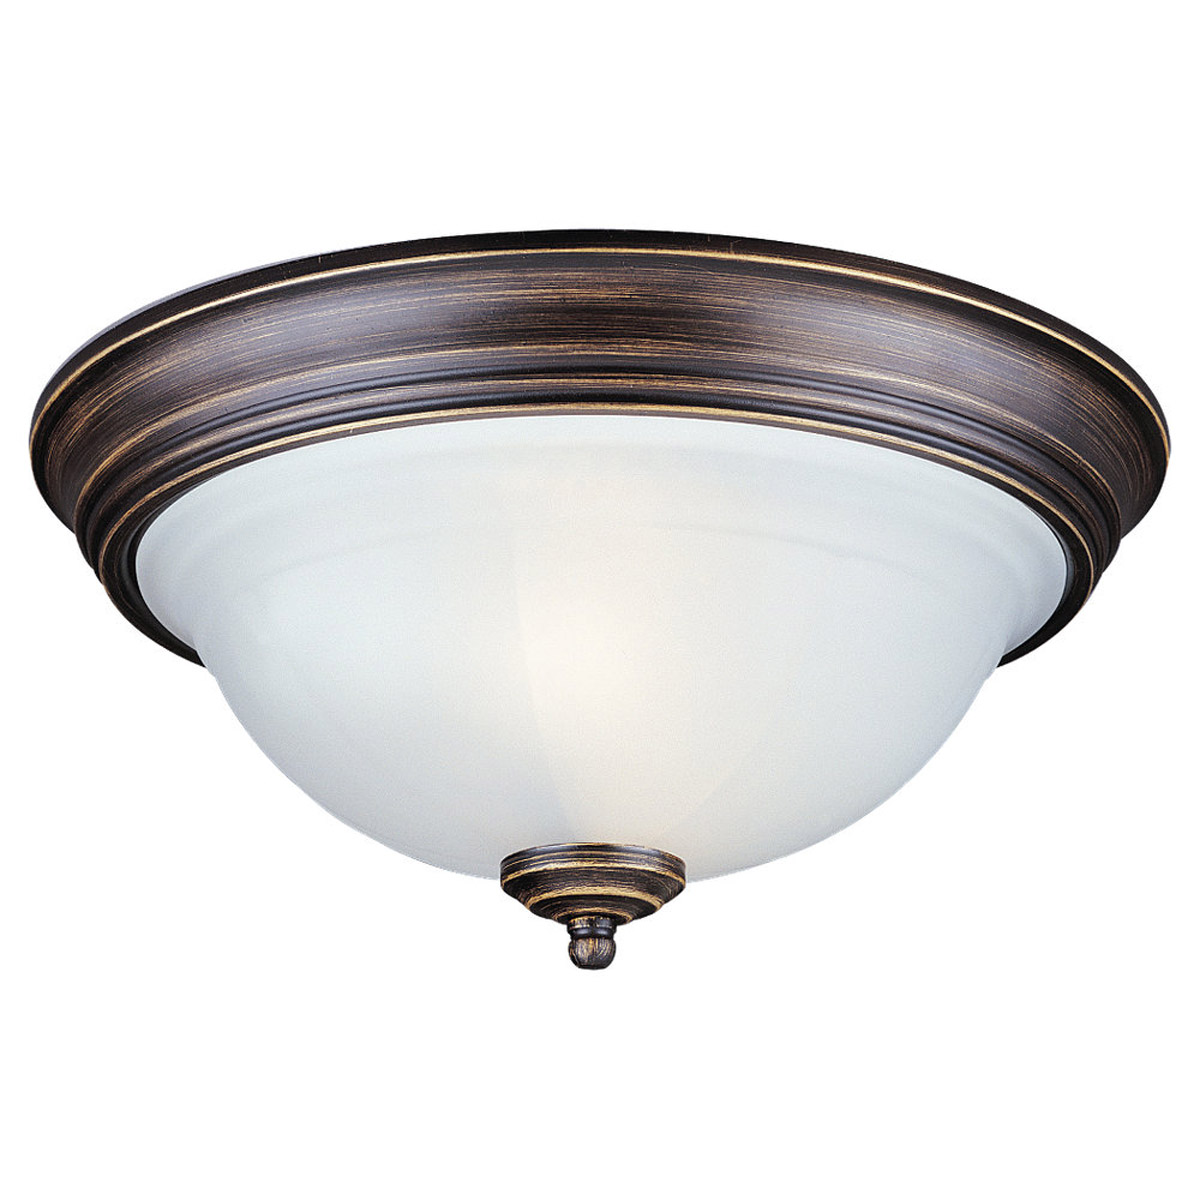 Sea Gull Lighting Canterbury 2 Light Flush Mount in Antique Bronze 77050-71 photo